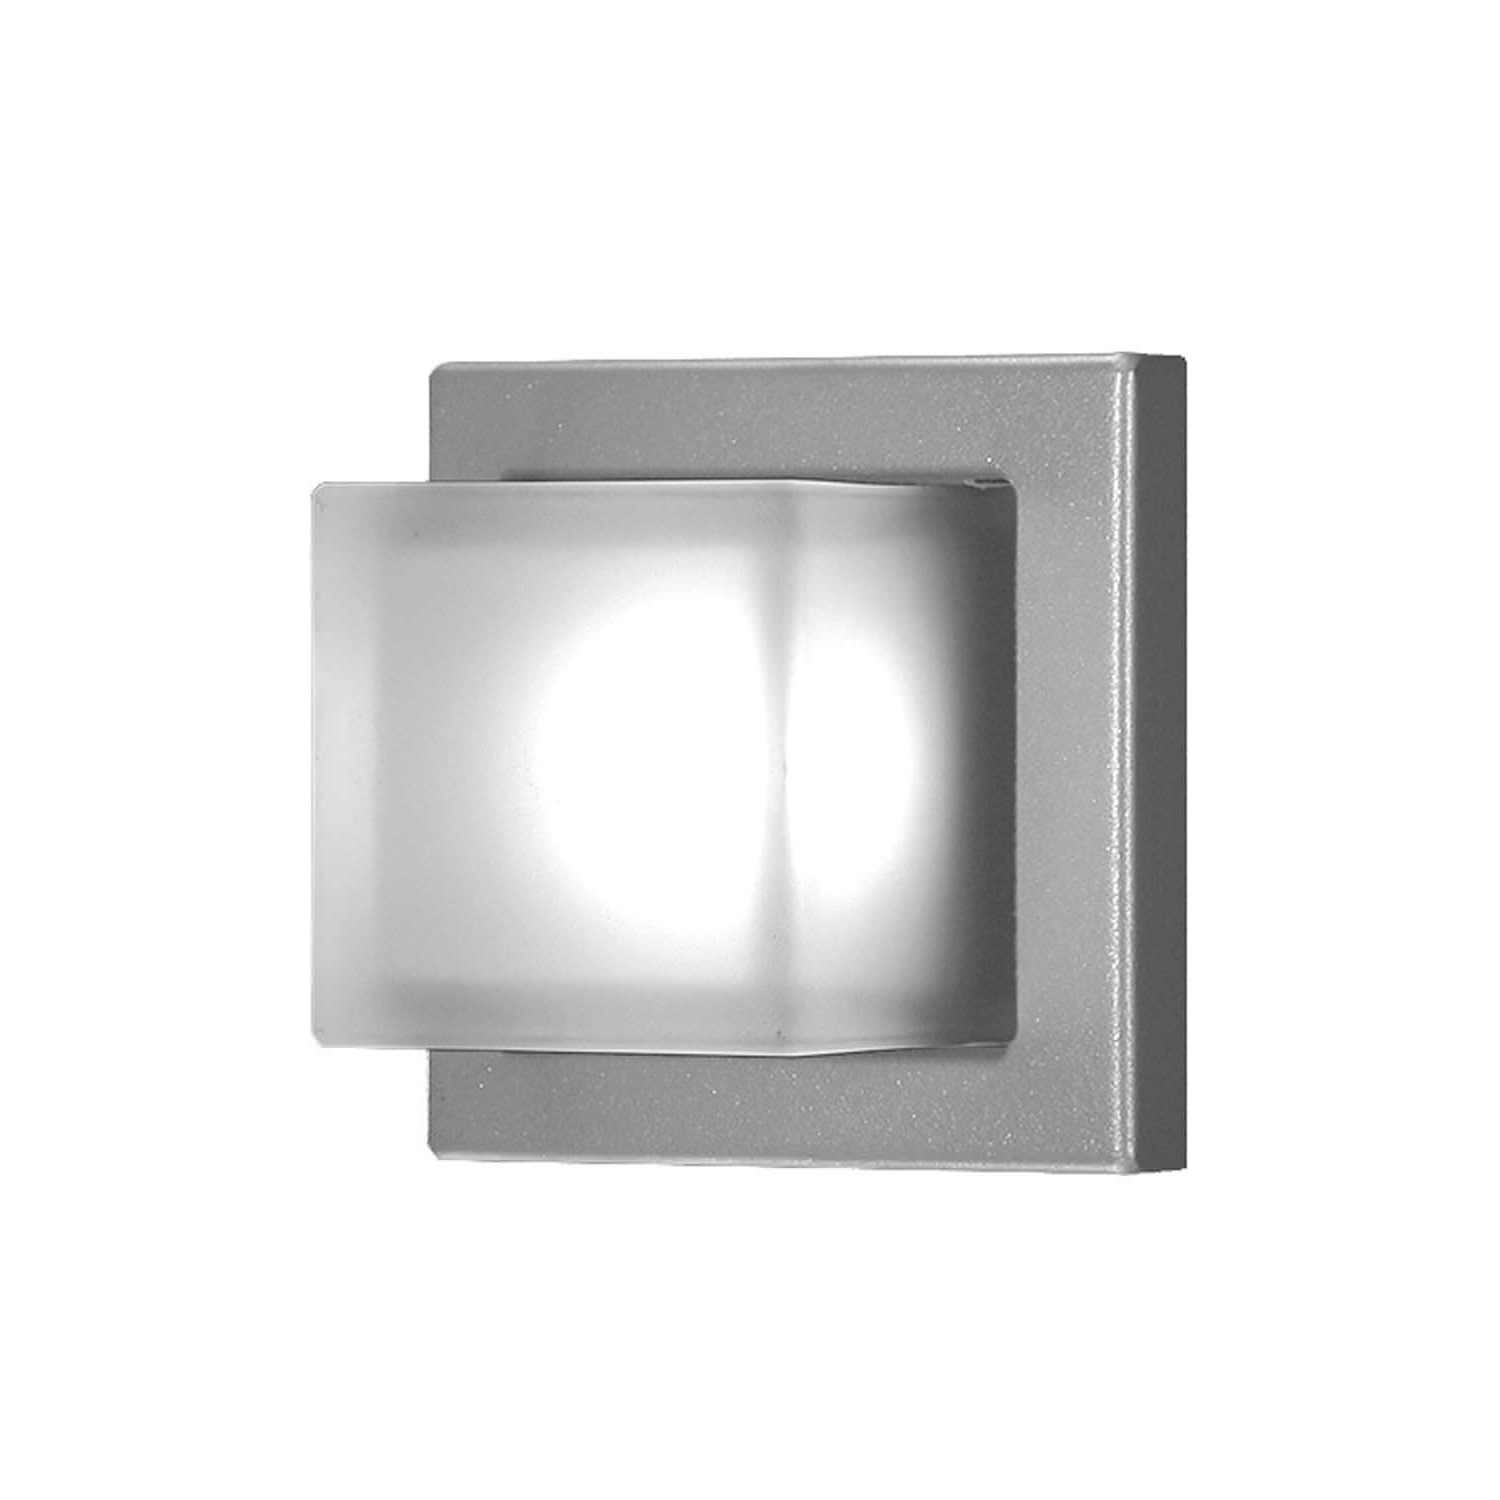 Outdoor Led Wall Lights For House Sign With Door Number In Well Known Outdoor Light : Outdoor Wall Lights Energy Star Captivating Exterior (View 15 of 20)